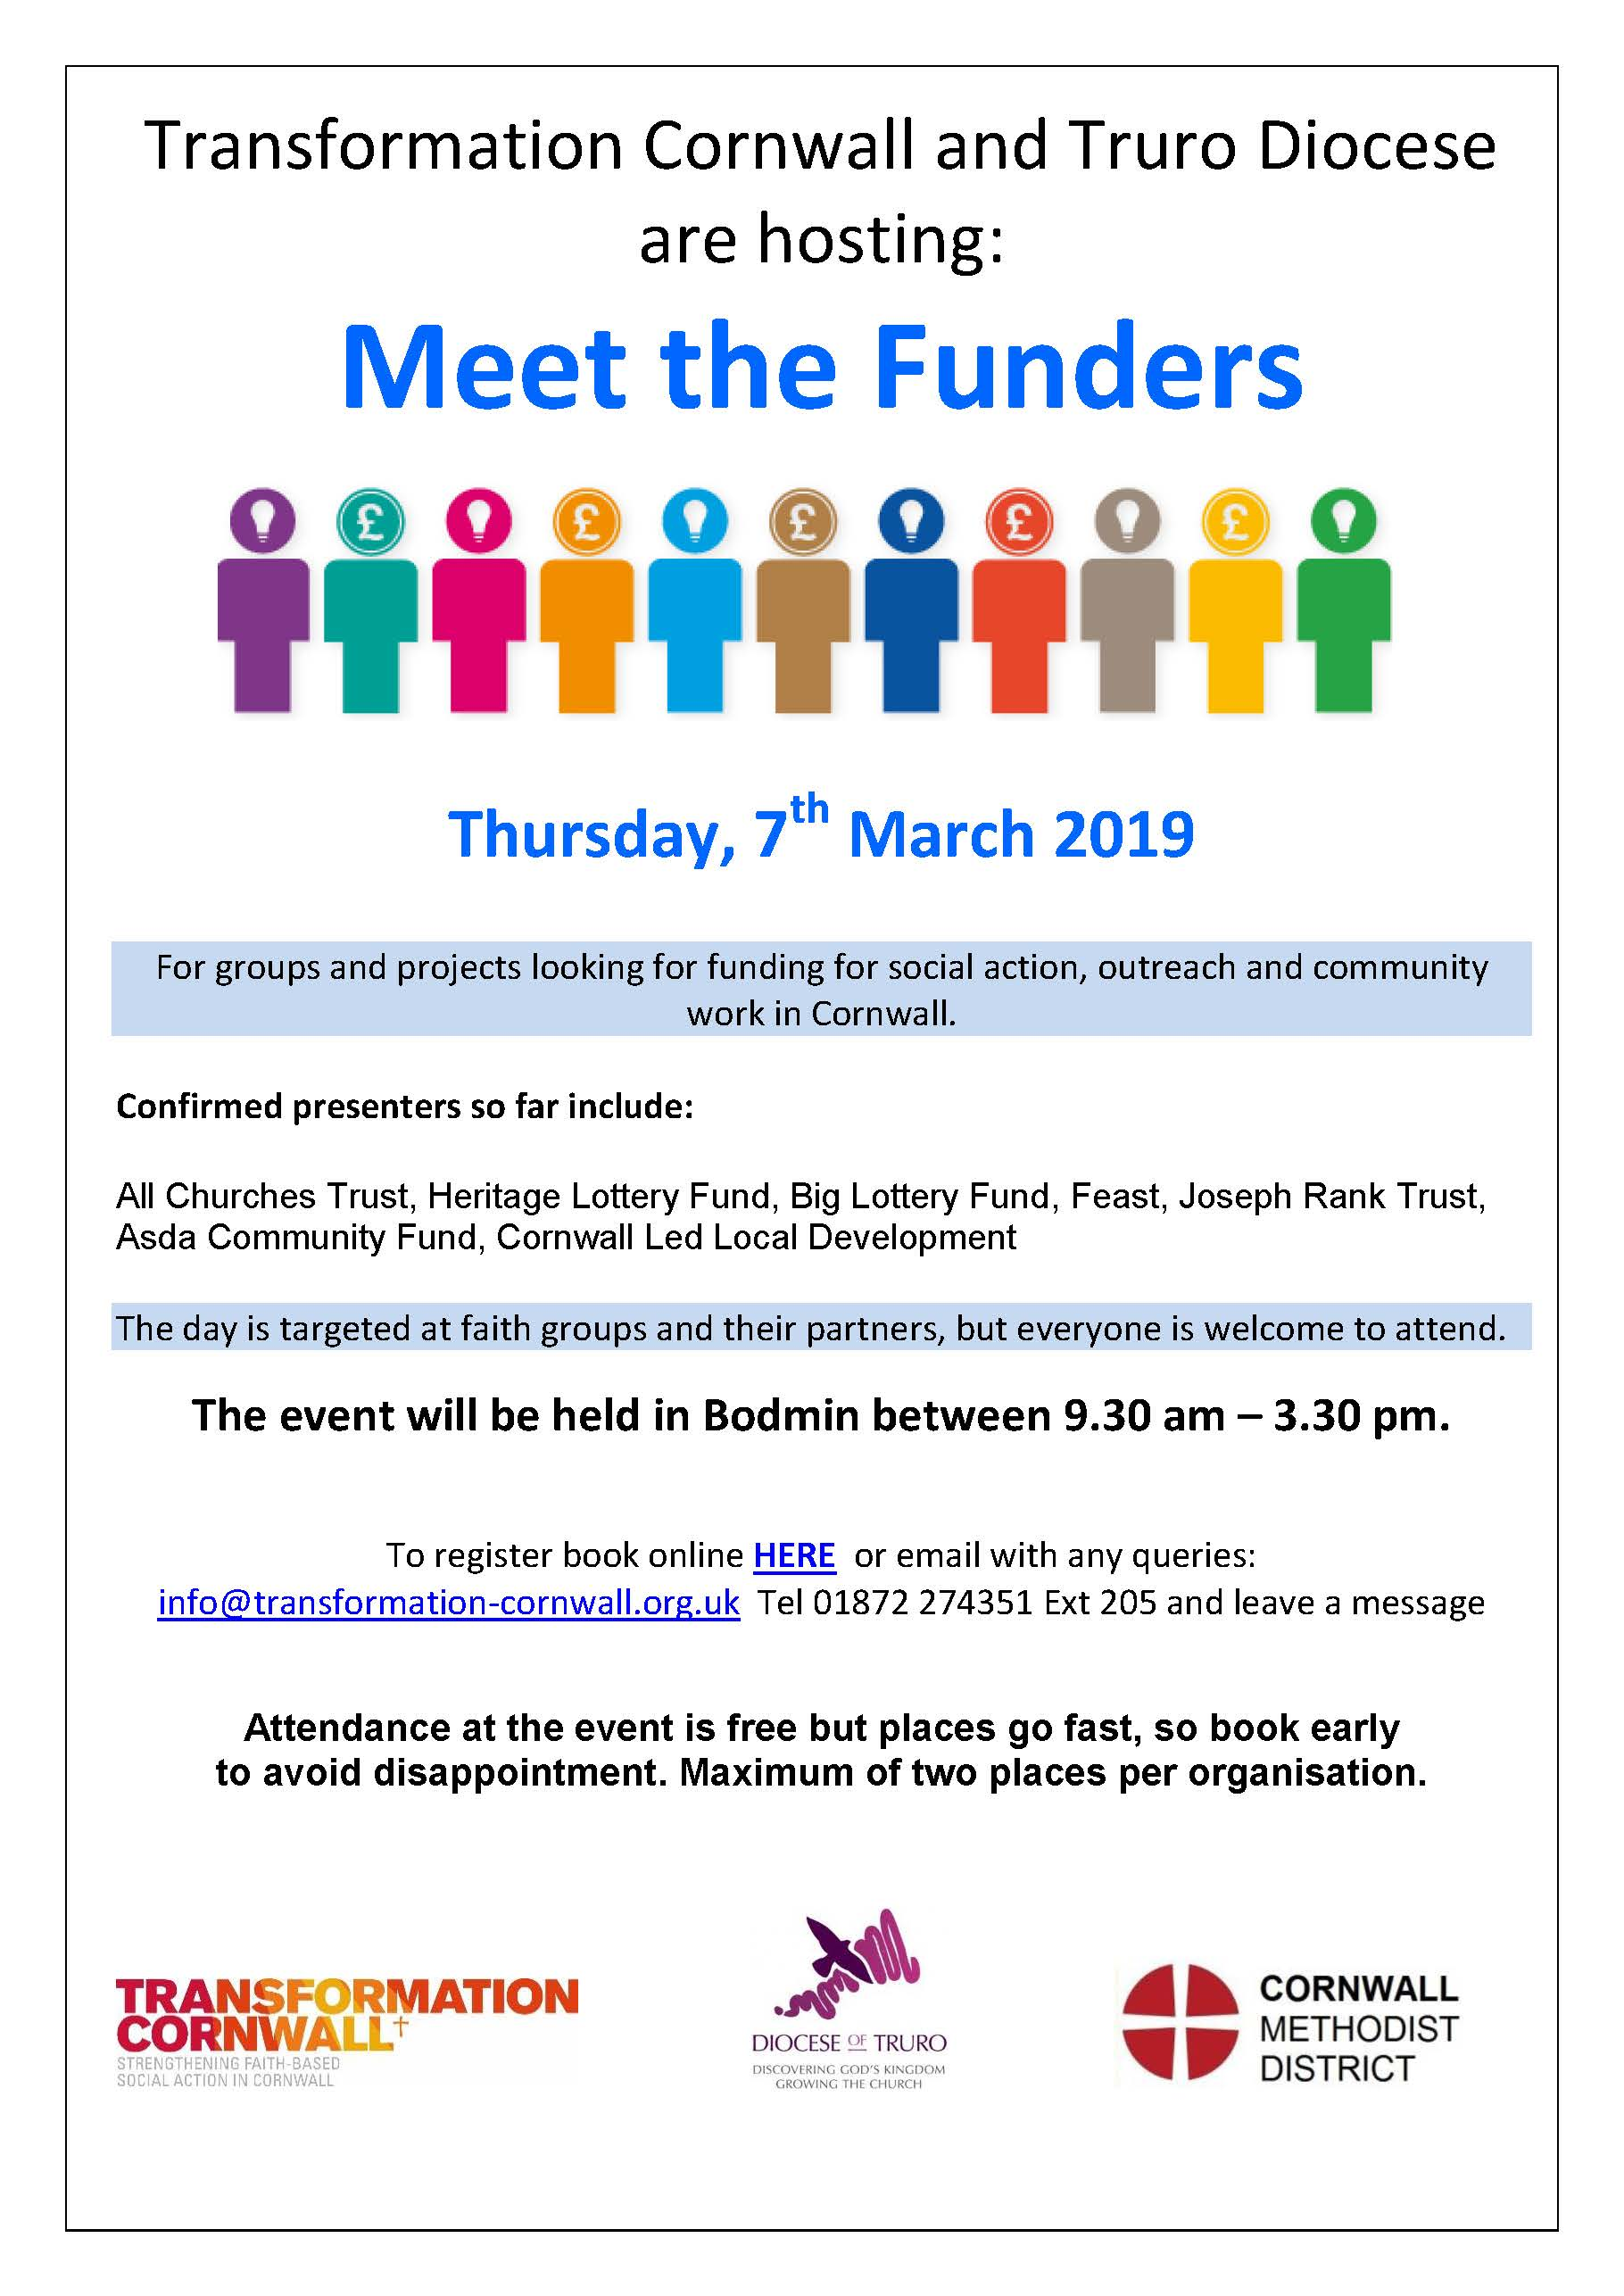 Transformation Cornwall - Meet the Funders - Bodmin - St Austell